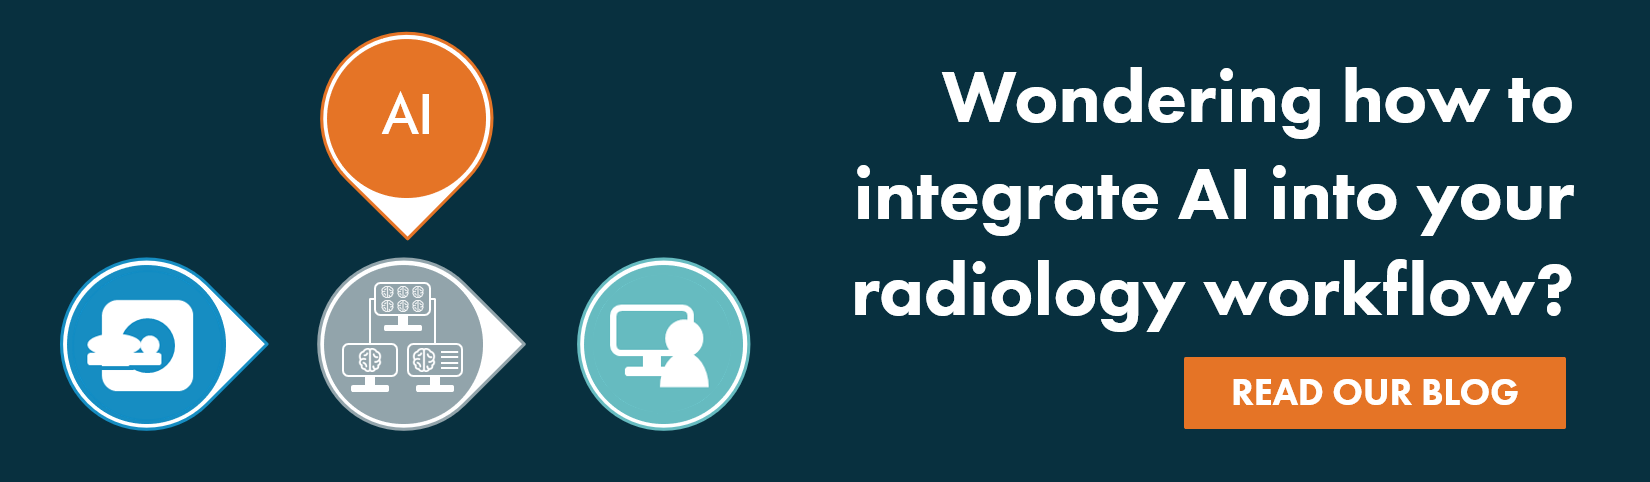 Radiology-workflow-integration-AI-blog-CTA